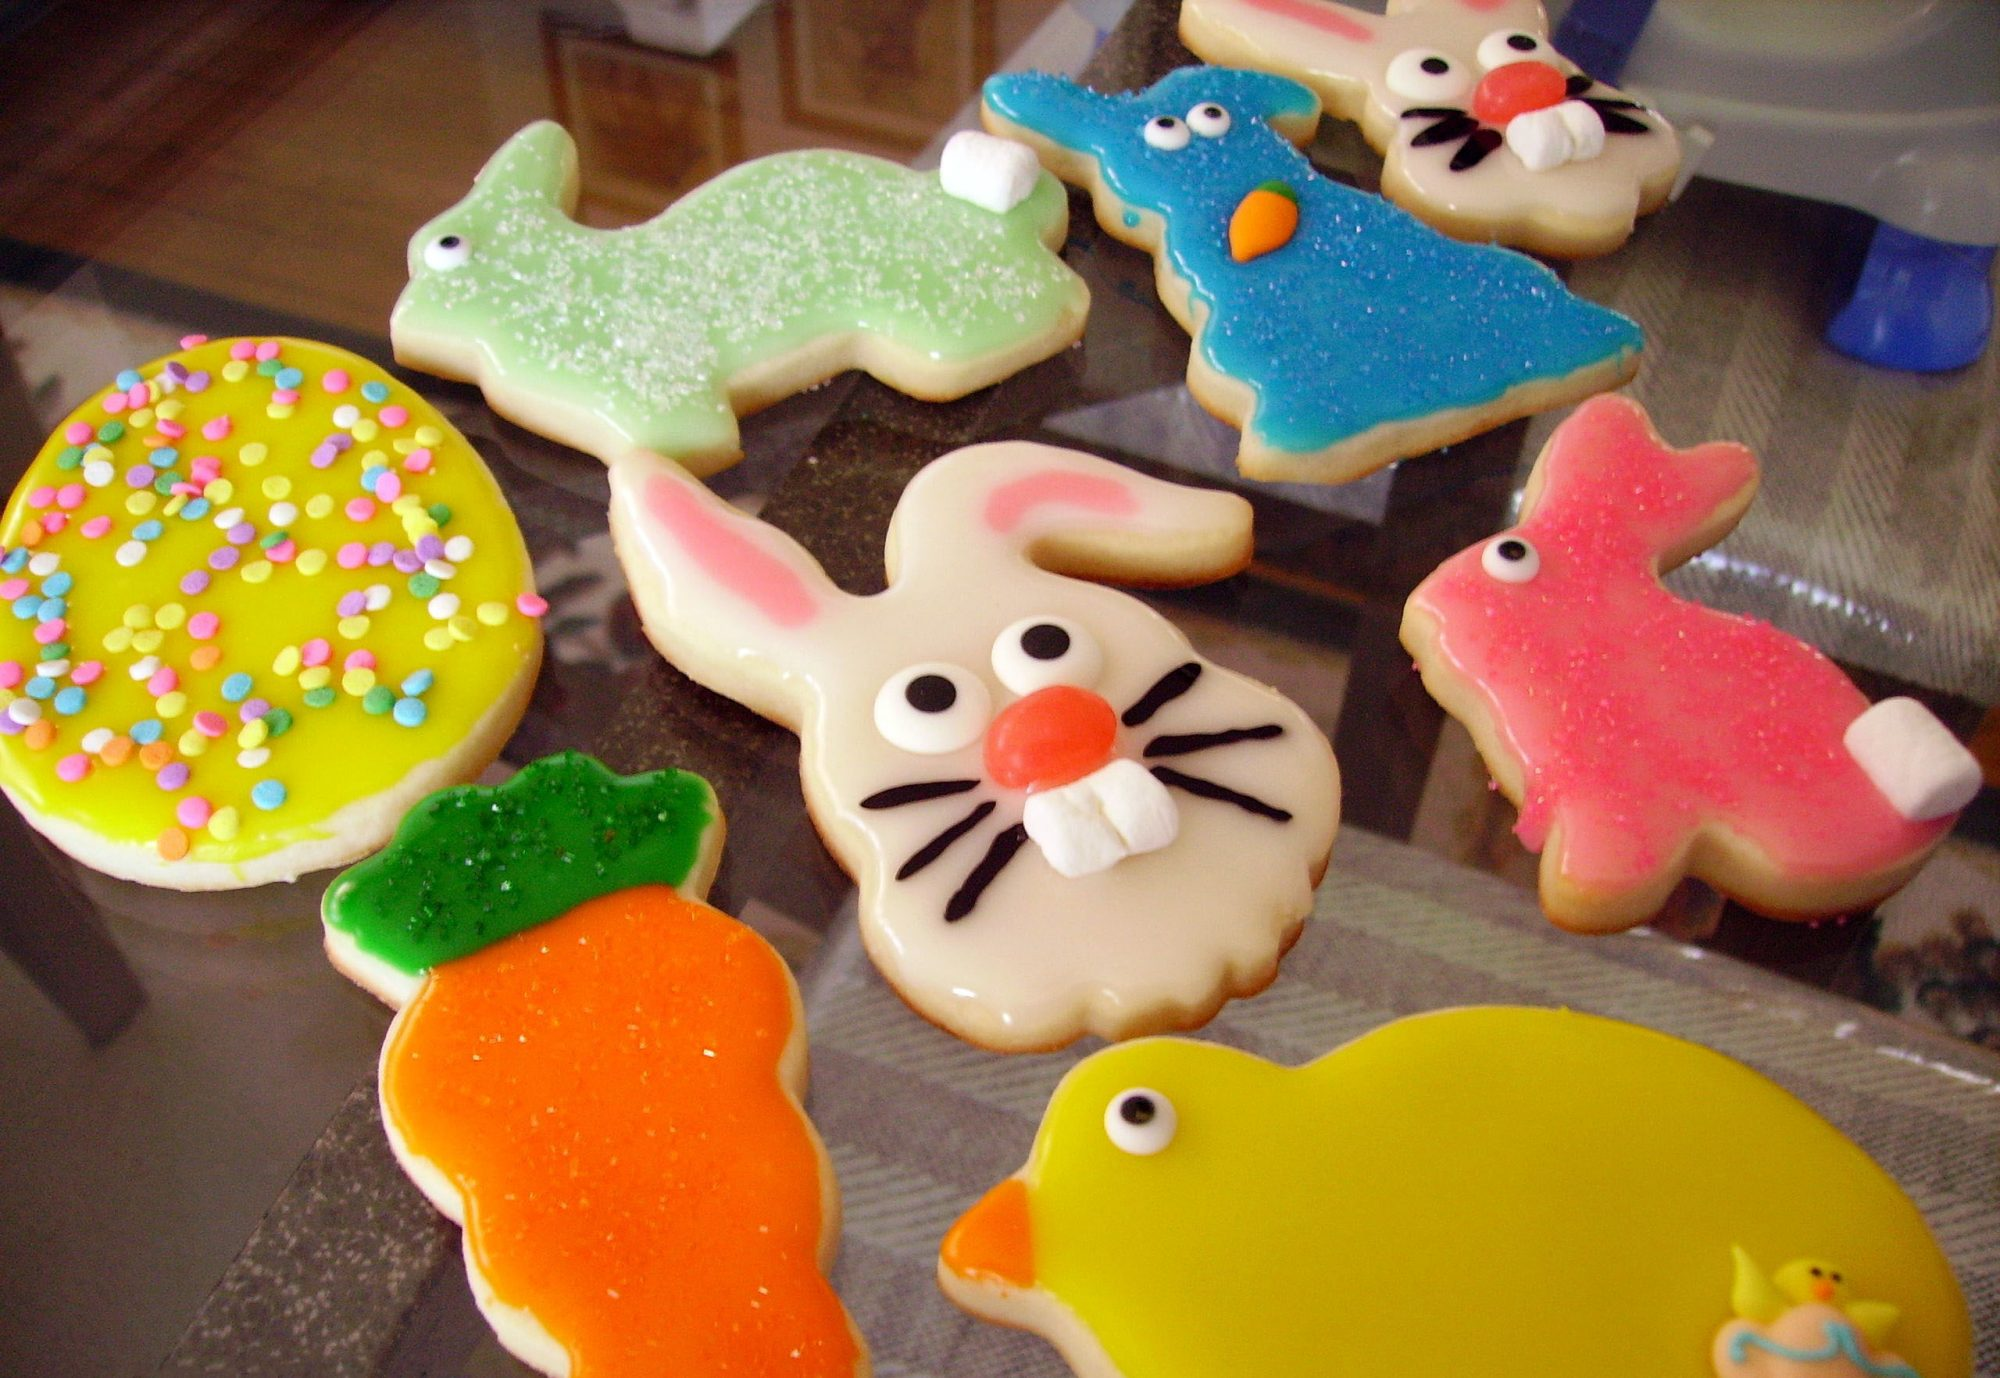 cookies decorated like Easter bunnies, carrots, chicks, and eggs